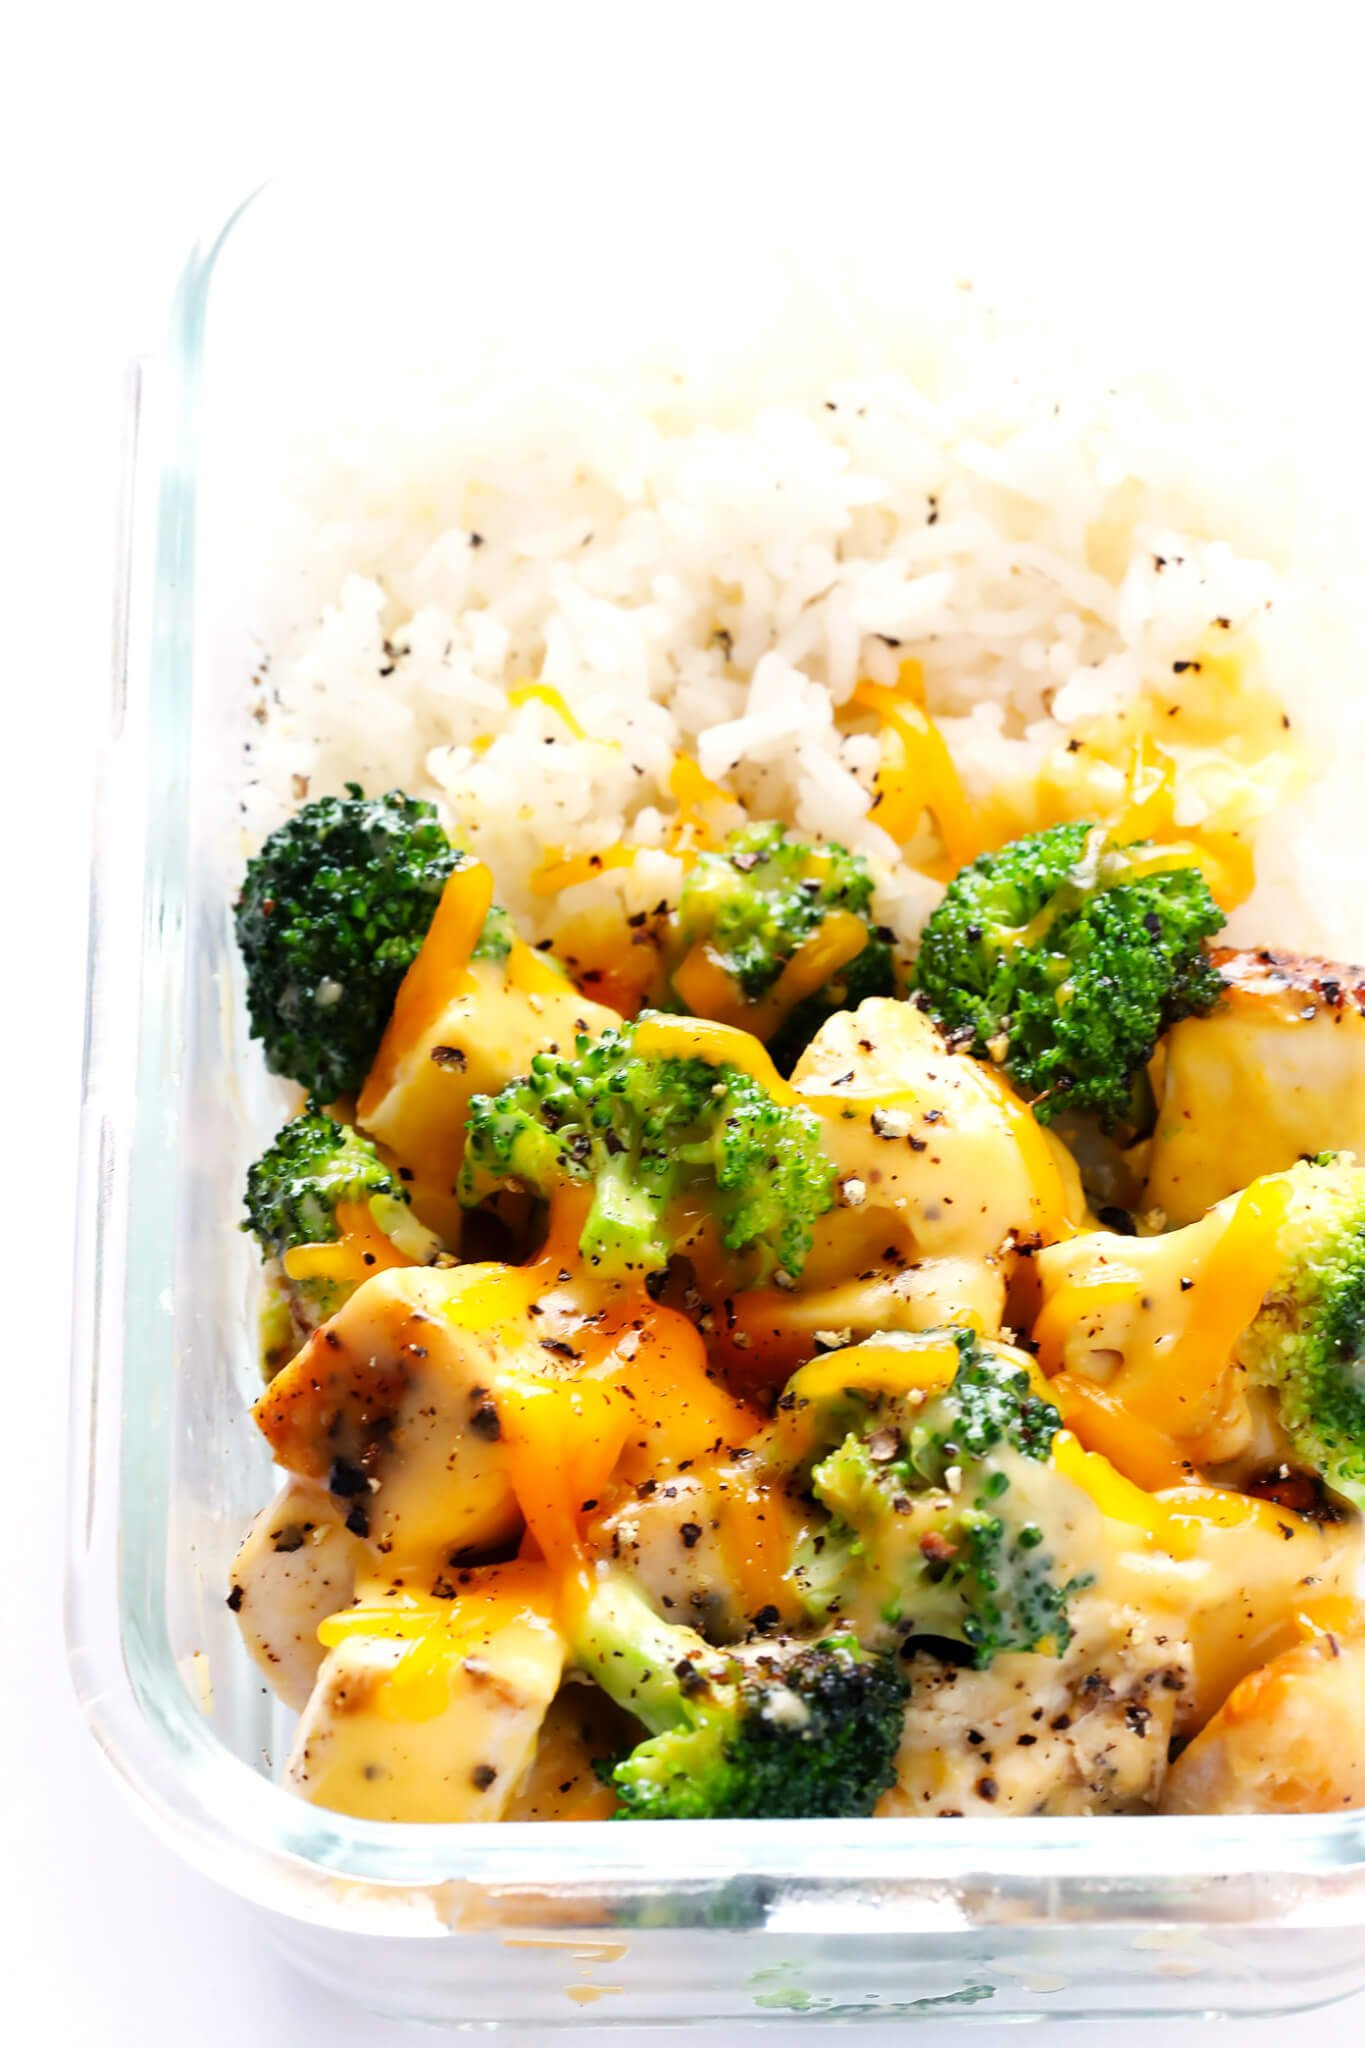 These Cheesy Broccoli Chicken And Rice Bowls Are Perfect For Easy Meal Prep Or Weeknight